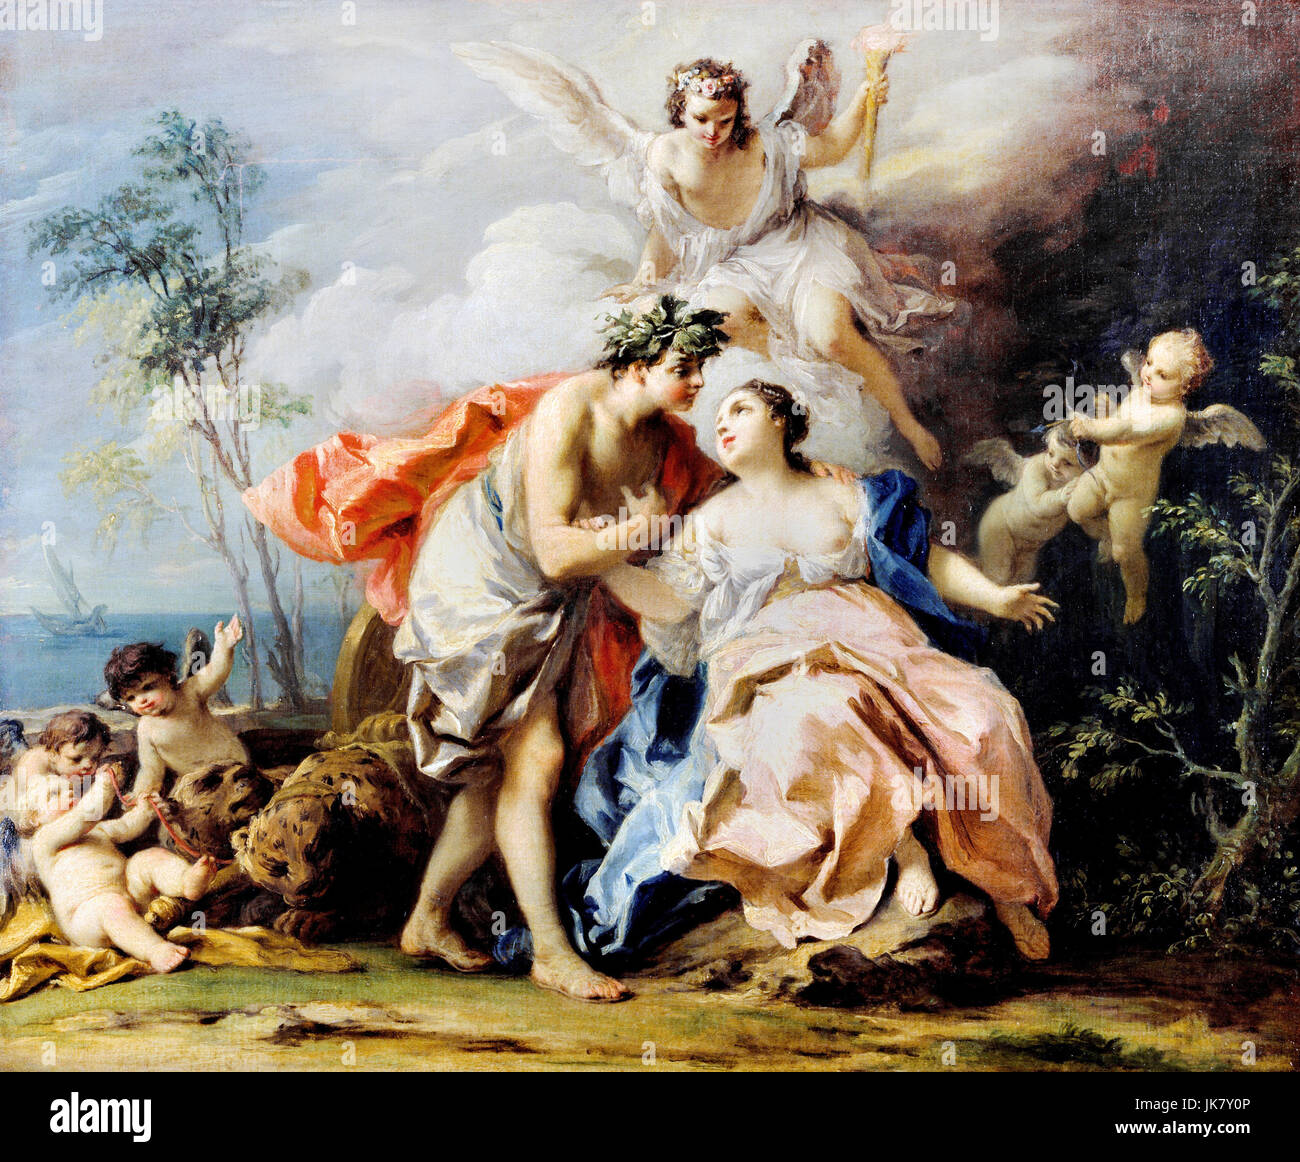 Jacopo Amigoni, Bacchus and Ariadne. Circa 1740-1742. Oil on canvas. Art Gallery of New South Wales, Sydney, Australis. - Stock Image